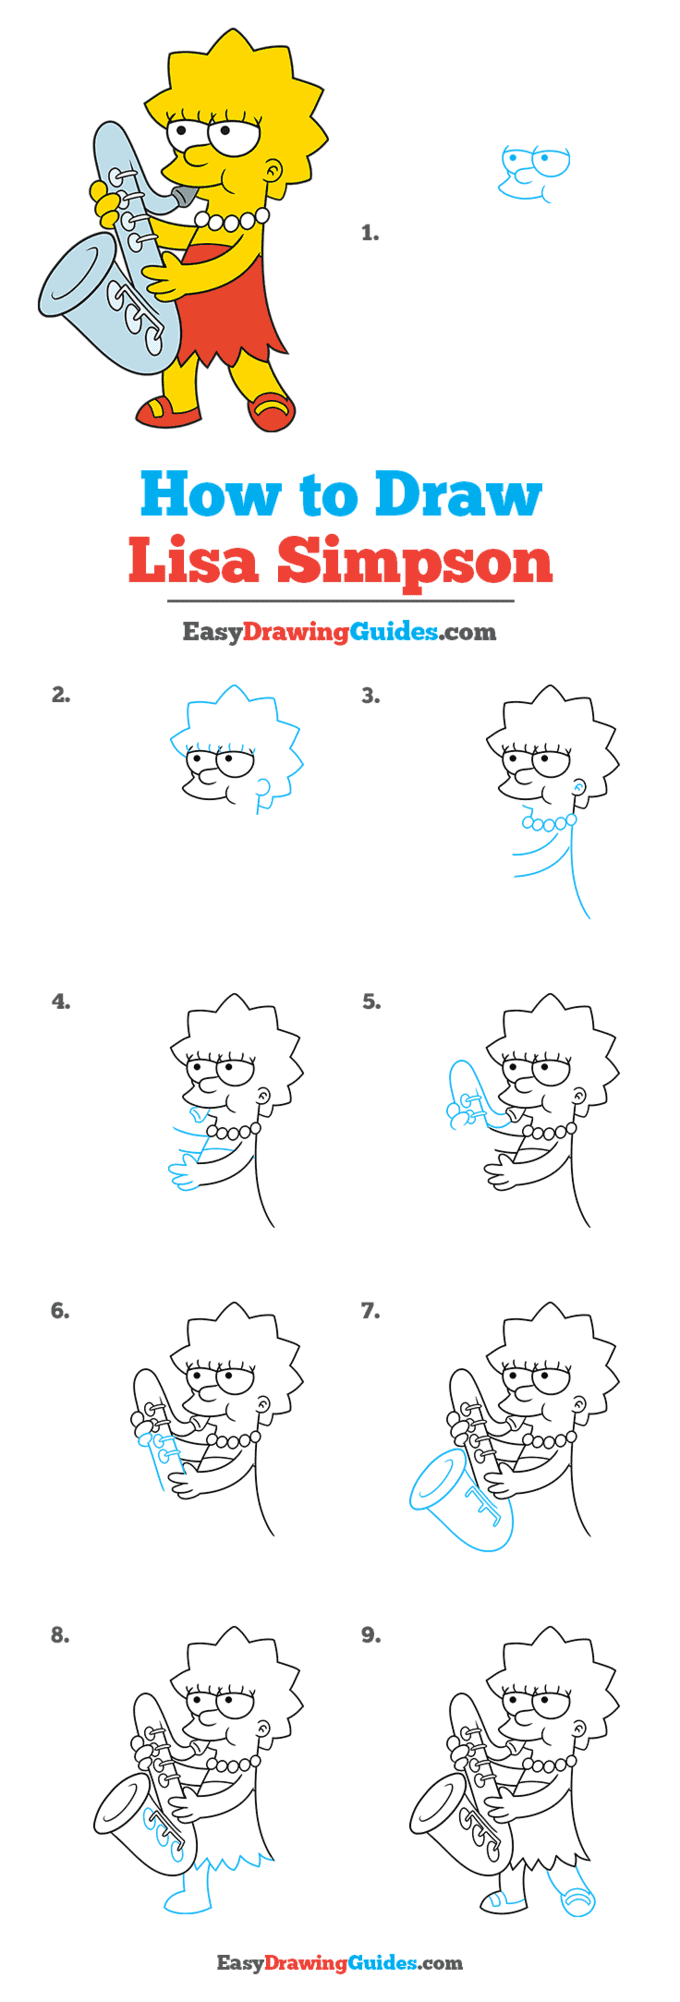 How to Draw Lisa Simpson Step by Step Tutorial Image